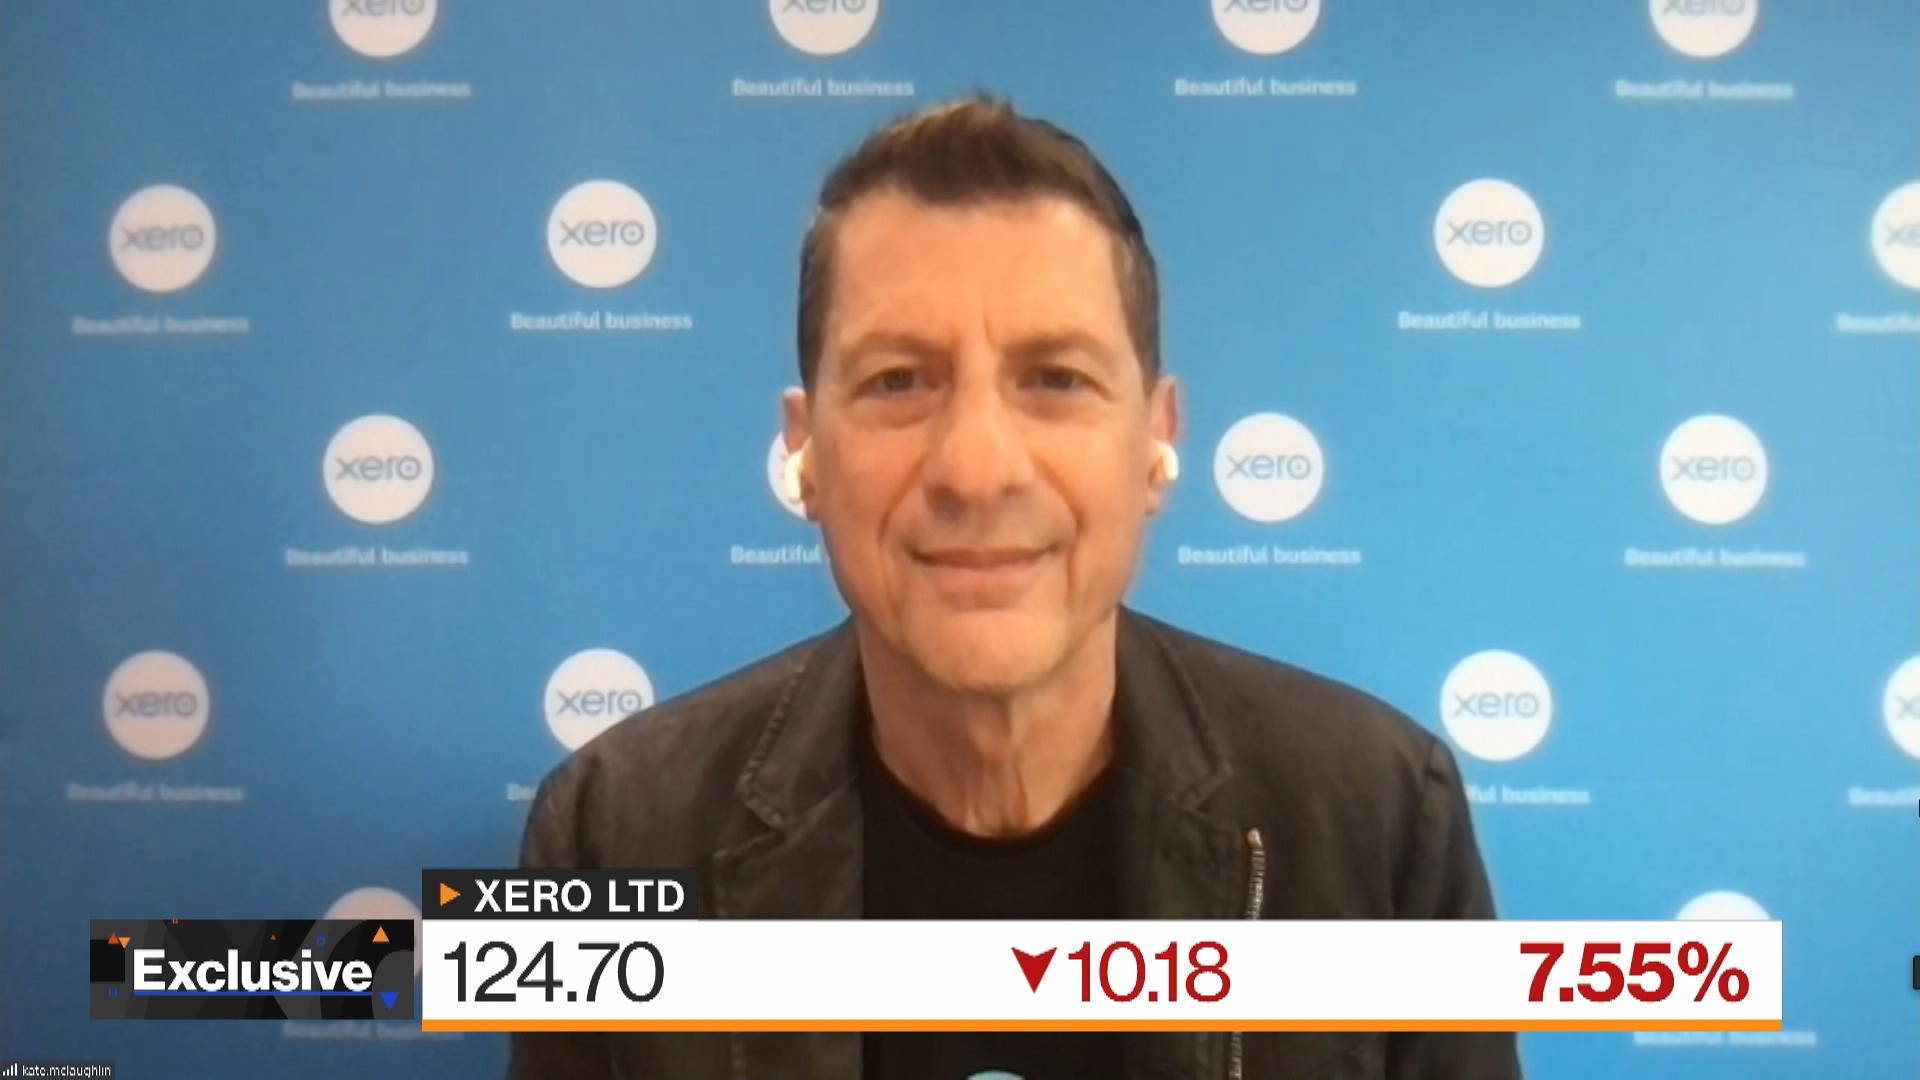 Xero Profit Surges, Sees Record Subscriber Growth